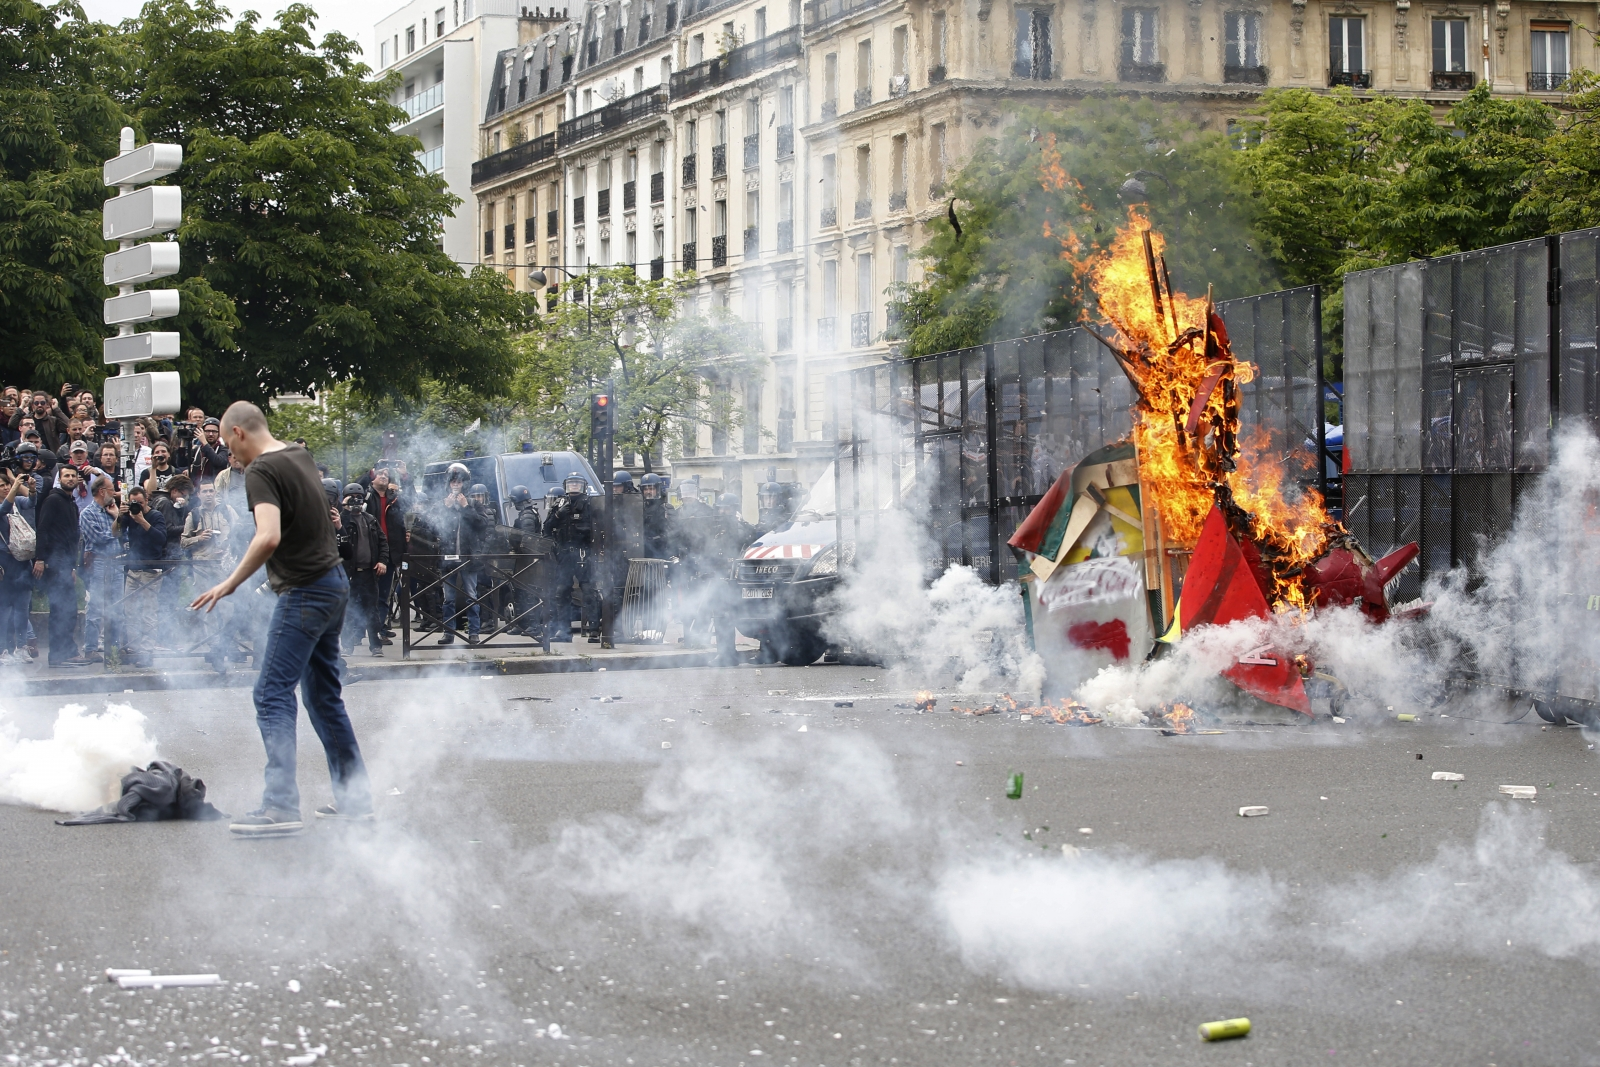 Tear gas fired by French riot police